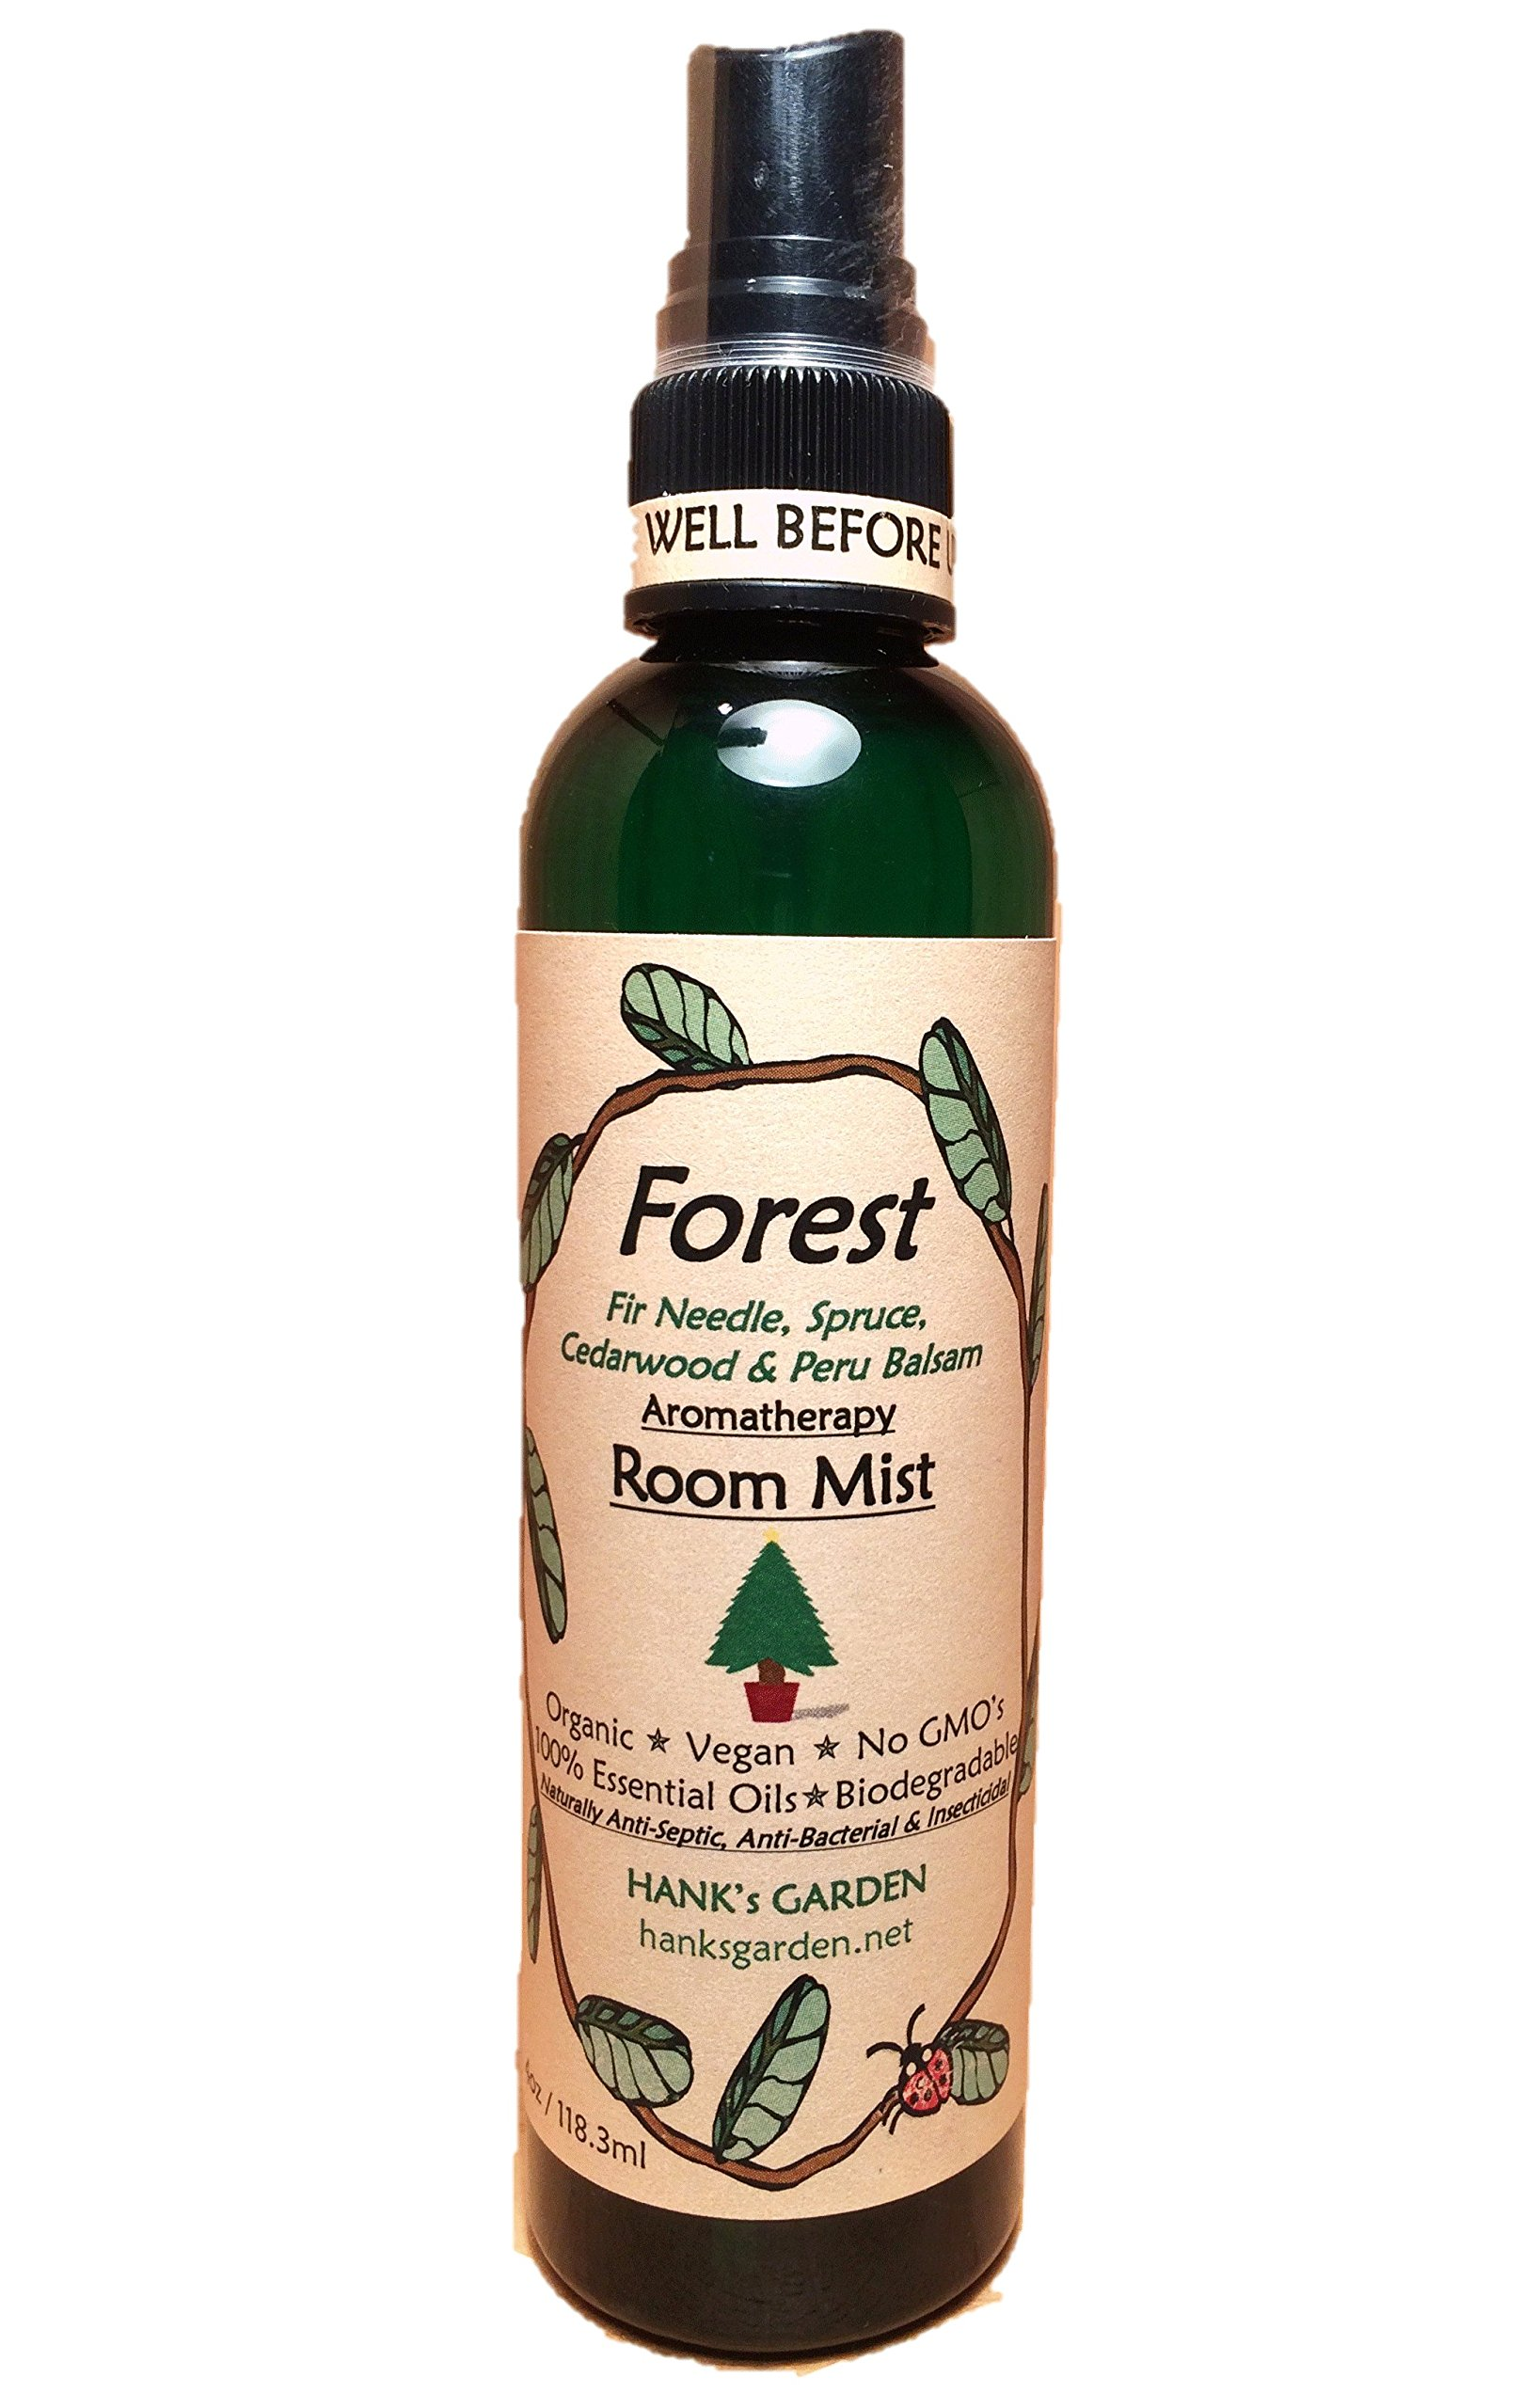 FOREST Aromatherapy Room Spray Mist - Fir Needle, Spruce, Cedarwood & Peru Balsam - Smells like Cut CHRISTMAS TREES - All Natural - EARTH FRIENDLY - Vegan - Organic - Biodegradable - Non GMO (4 oz)